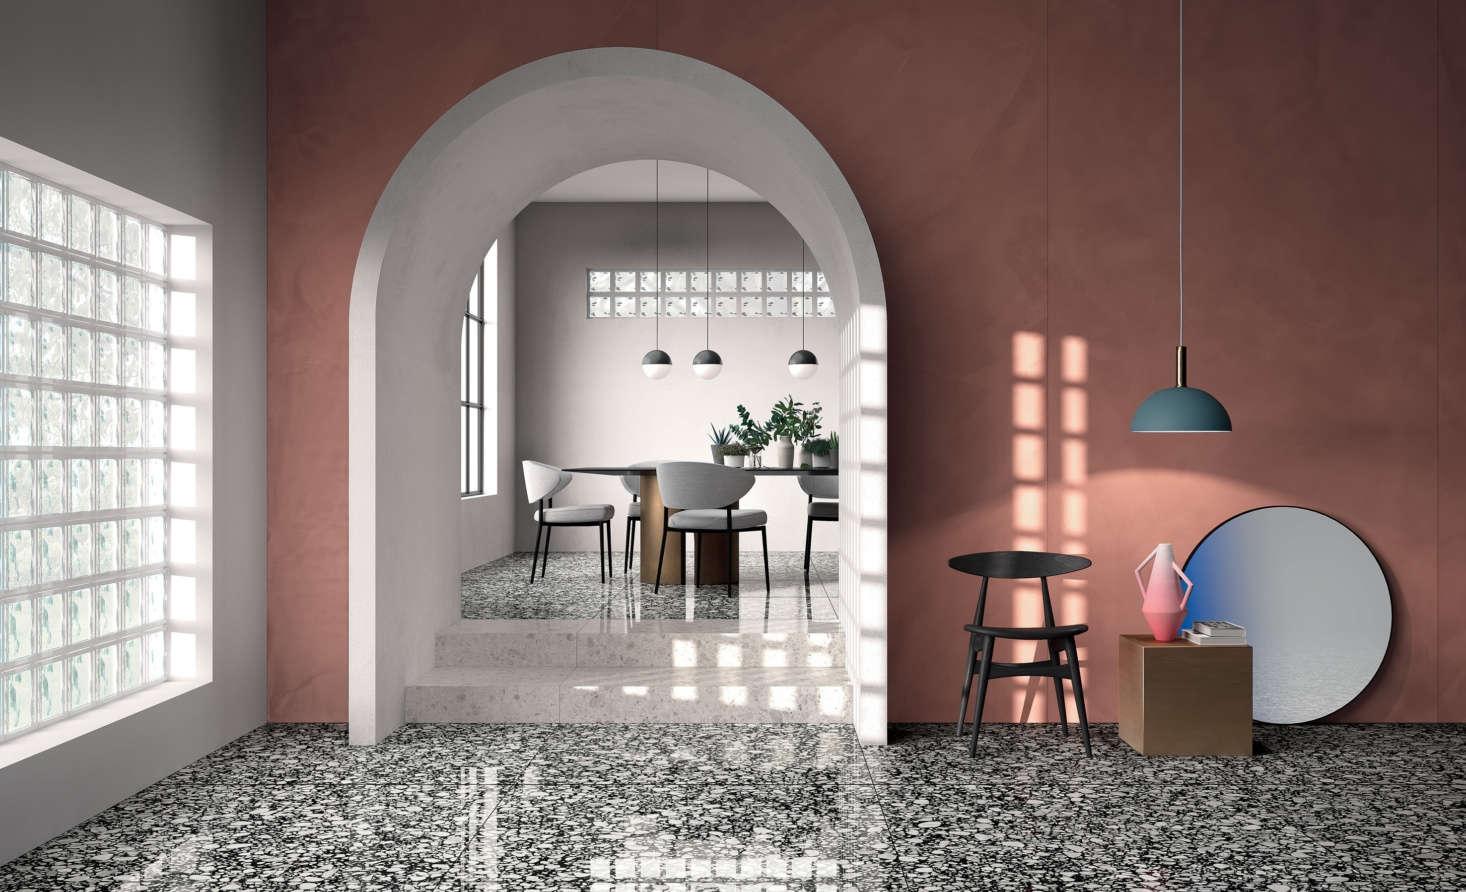 Made in the Mediterranean: Timeless Tile Designs by an Italian Collective